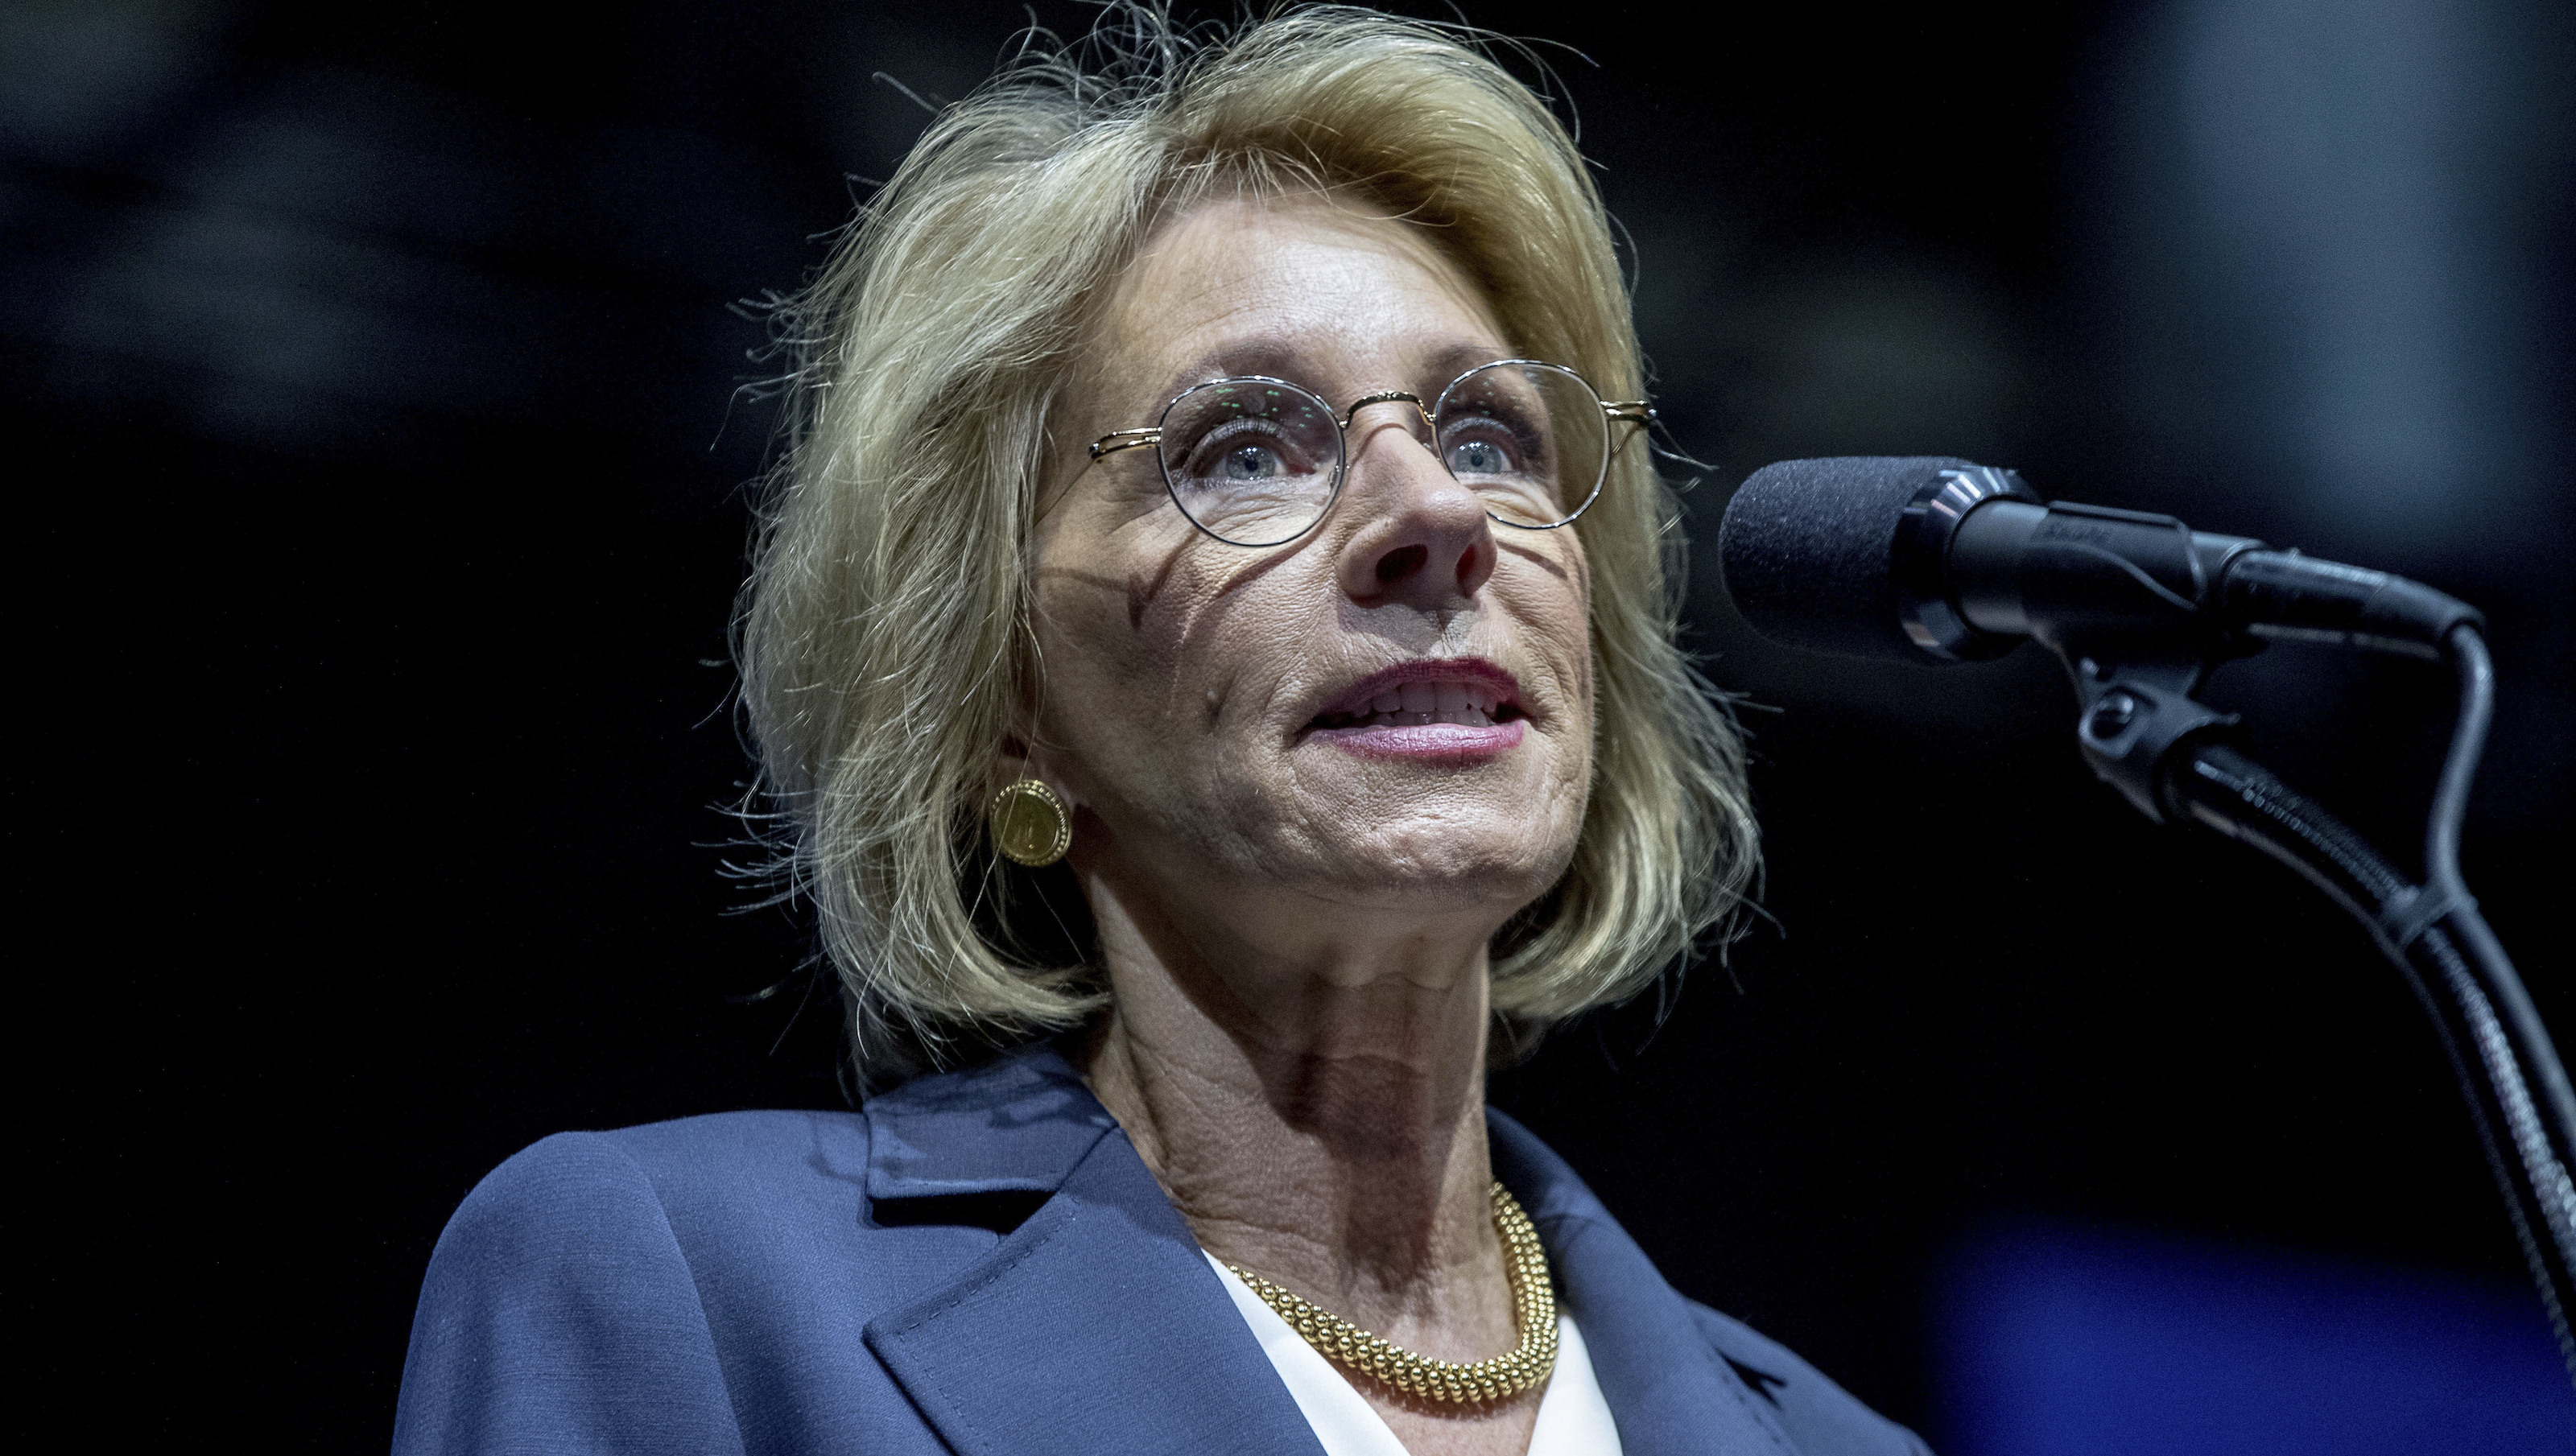 Devos Invested More Money In Brain >> Us Education Secretary Nominee Betsy Devos Is Controversial For The